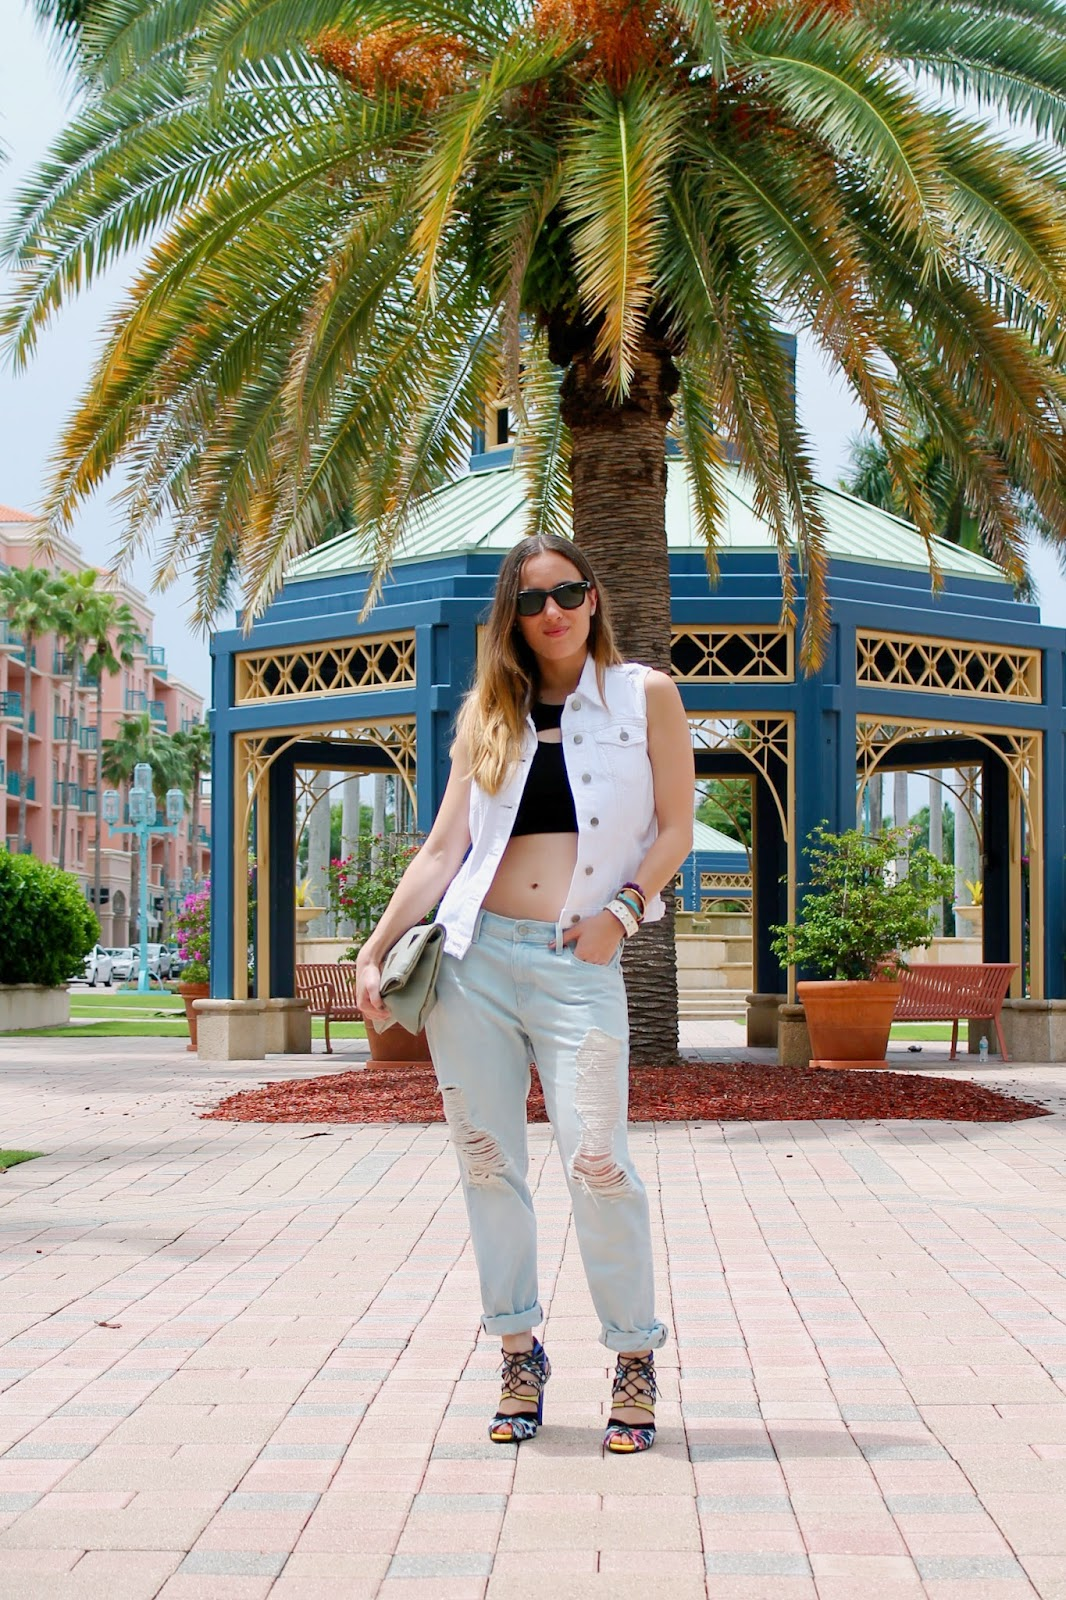 Gap, LF Stores, Zara, BCBGeneration, Nordstrom, Kate Spade, Ray-Ban, Miami fashion blogger, fashion blog, style blog, street style, classic, prep, distressed denim, denim vest, summer style, Gap Lincoln Road